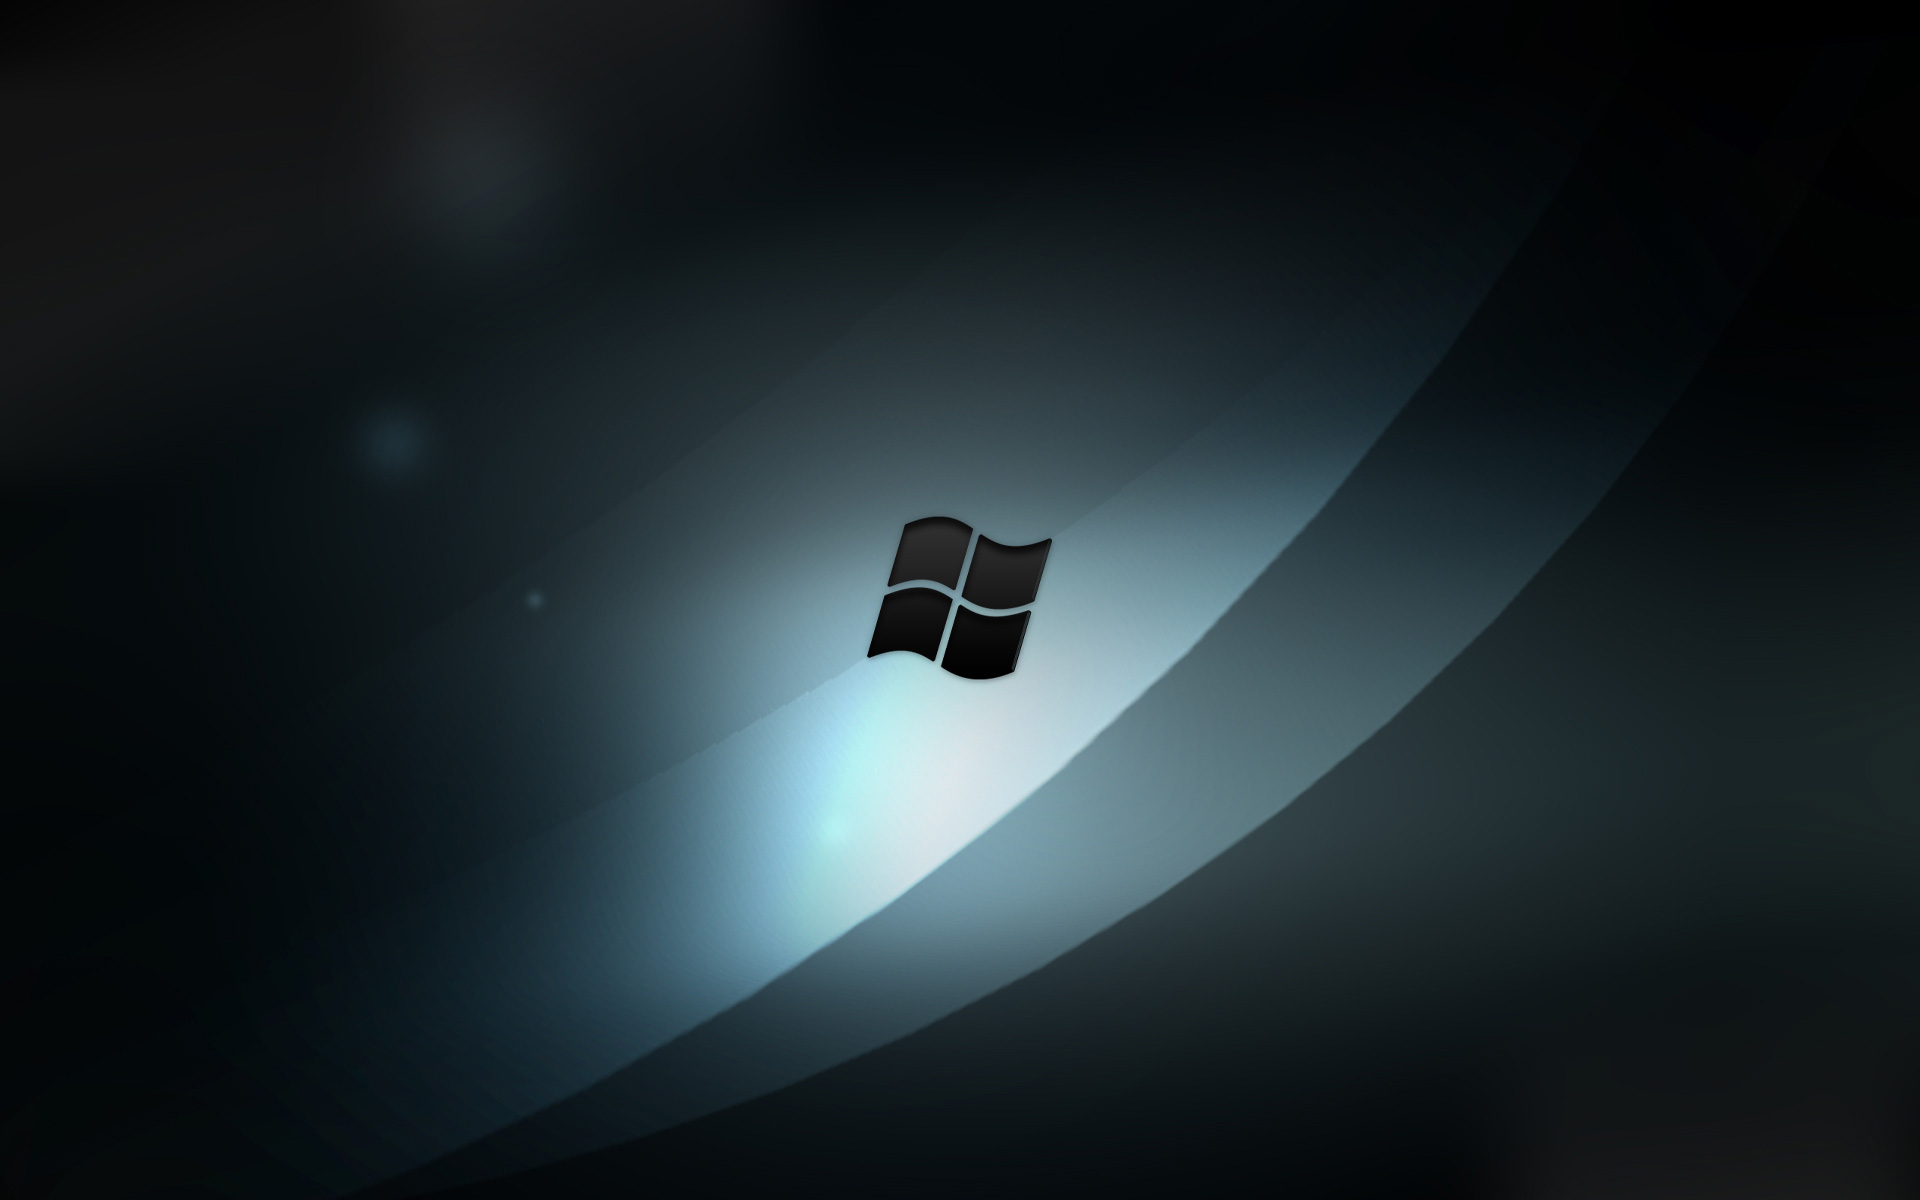 Windows Wallpapers for Android HD Wallpaperjpeg 1920x1200